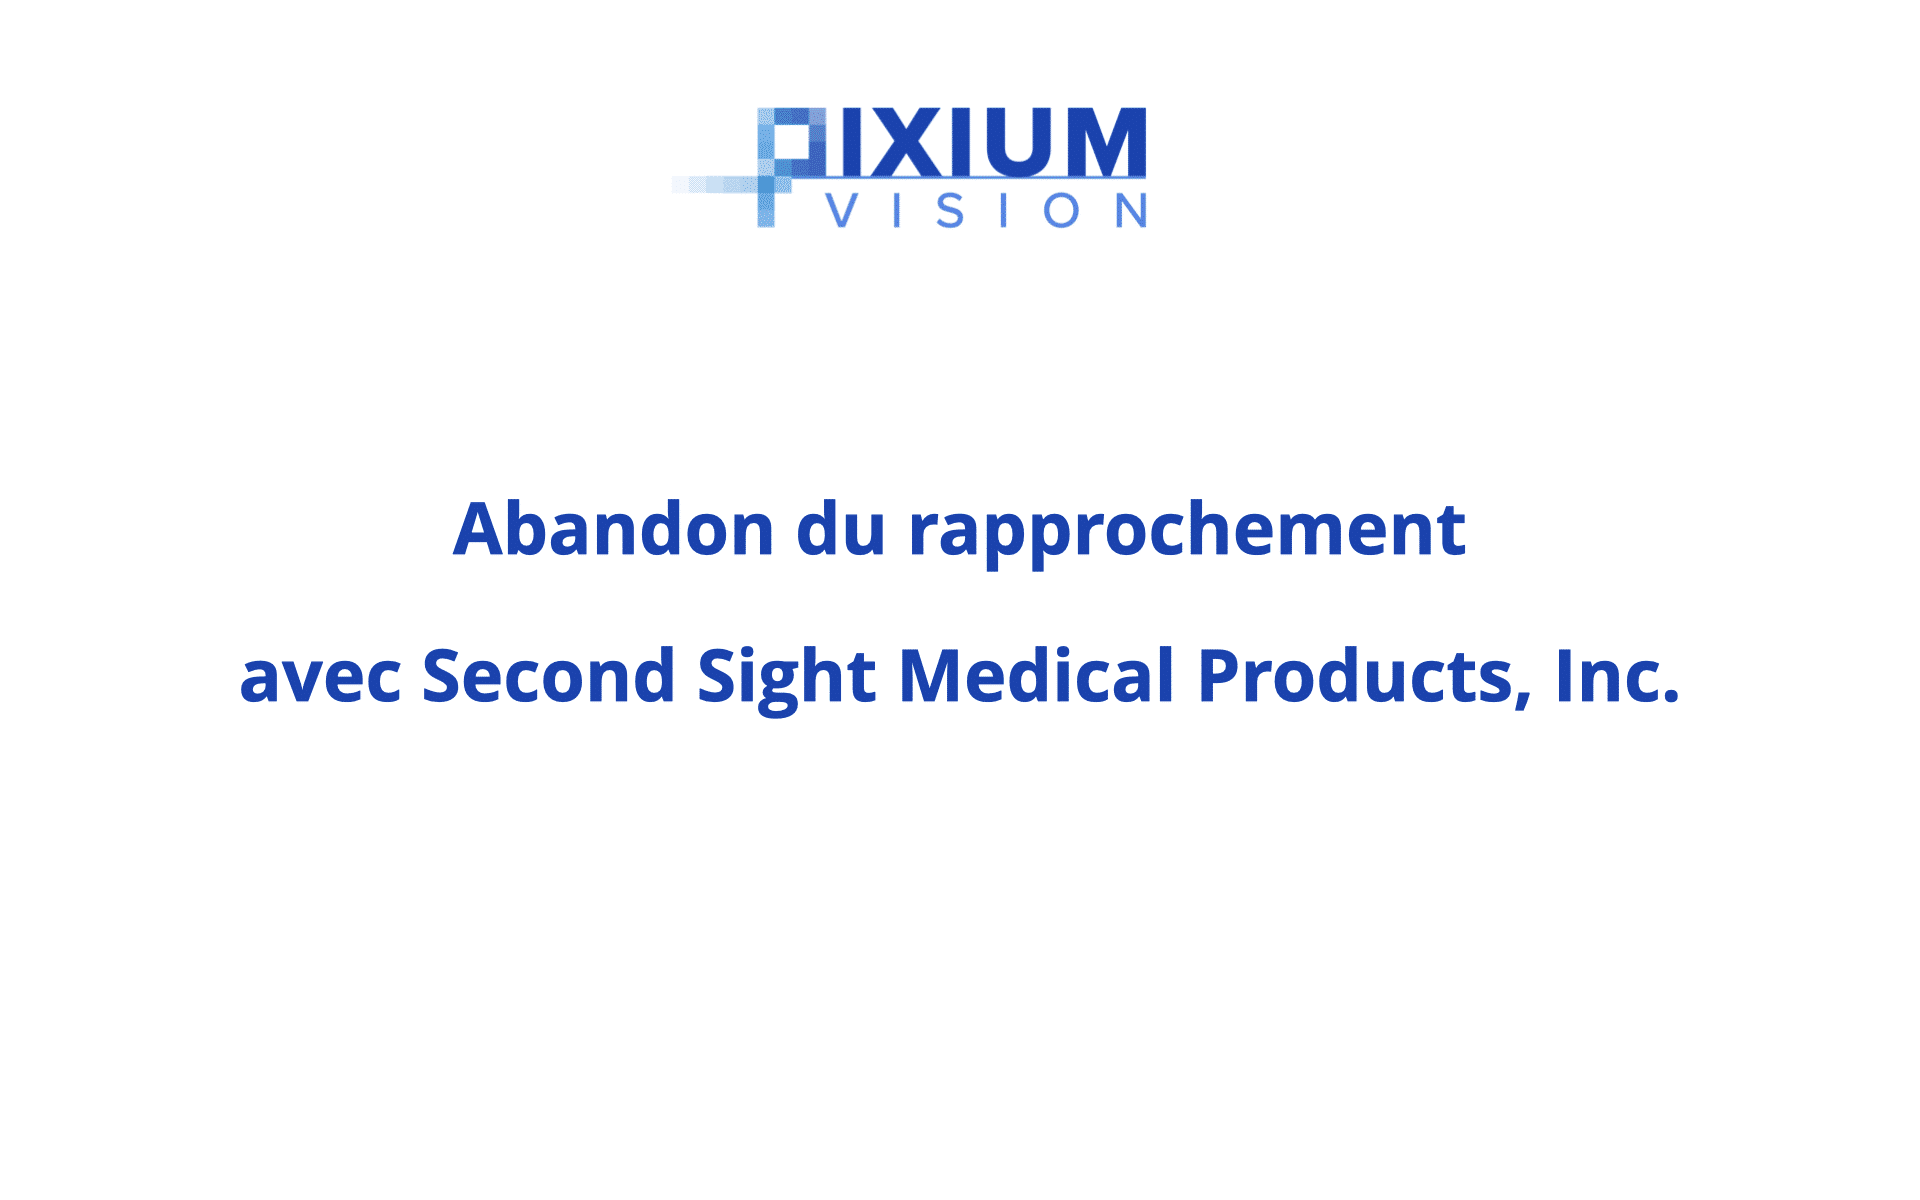 Abandon du rapprochement avec Second Sight Medical Products, Inc.